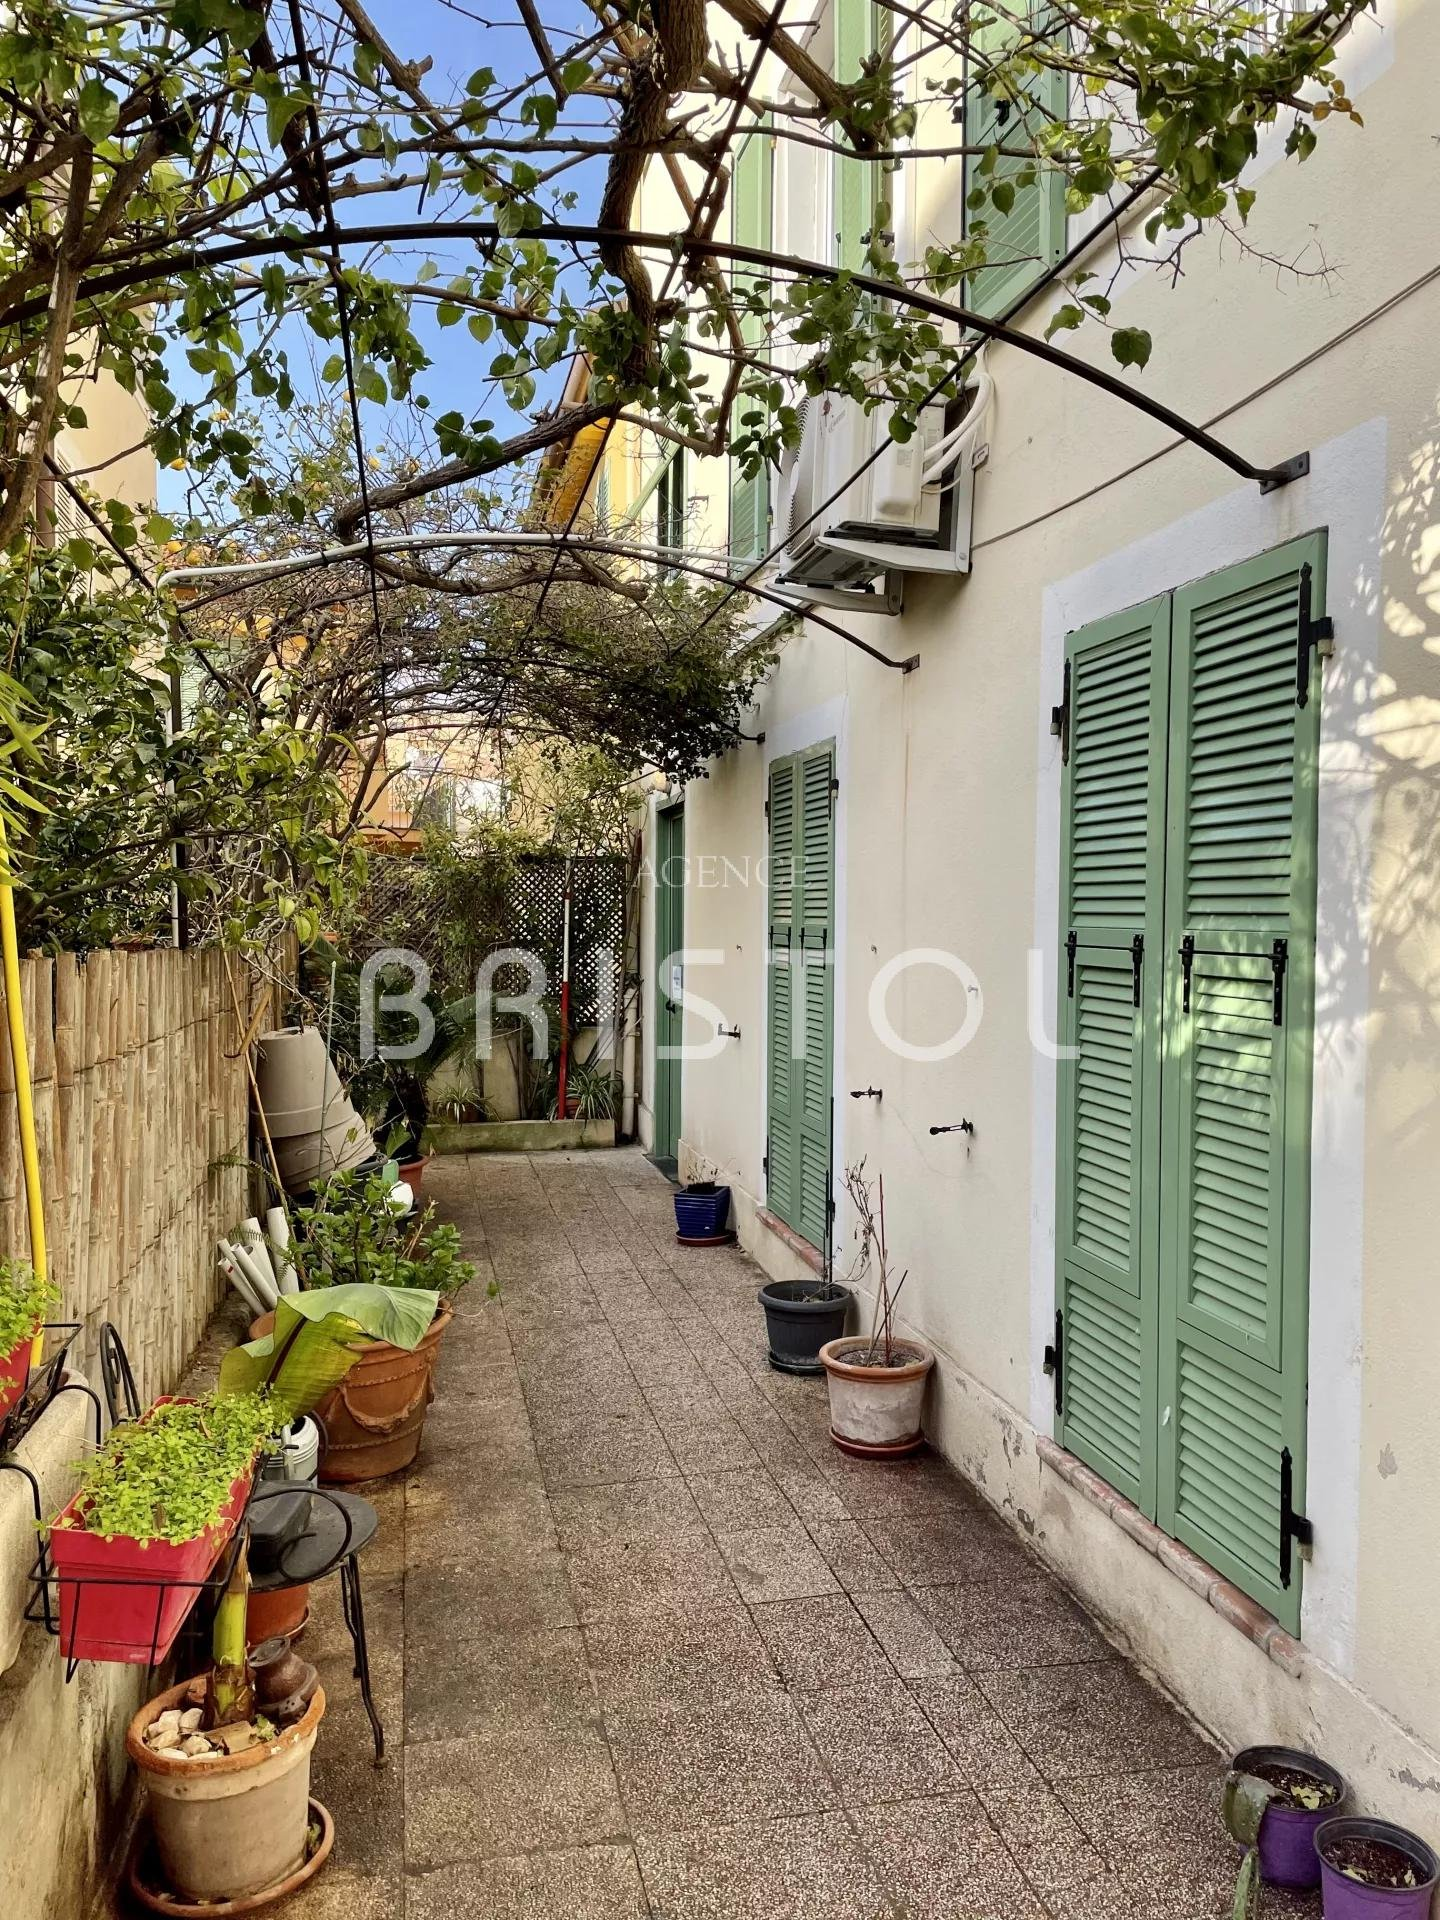 Top floor in a charming old house in the heart of the village